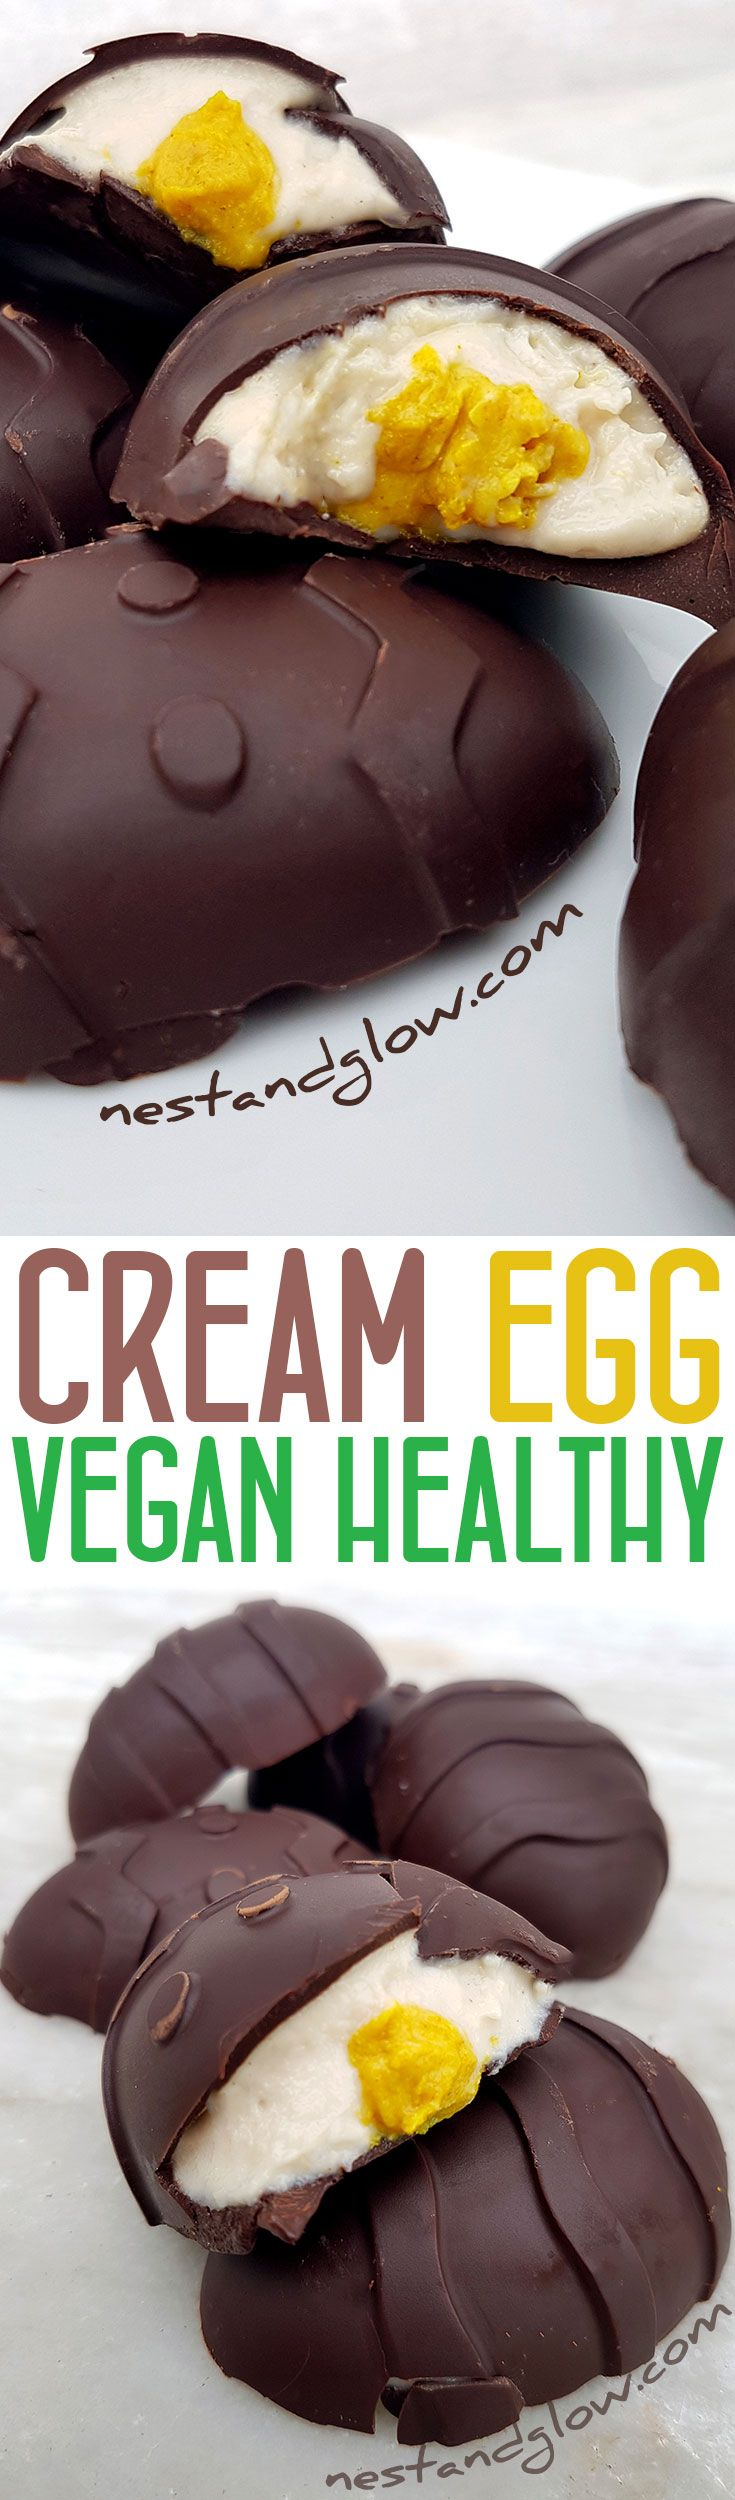 Cashew Cream Eggs - Easy Vegan healthy recipe perfect for easter via @nestandglow